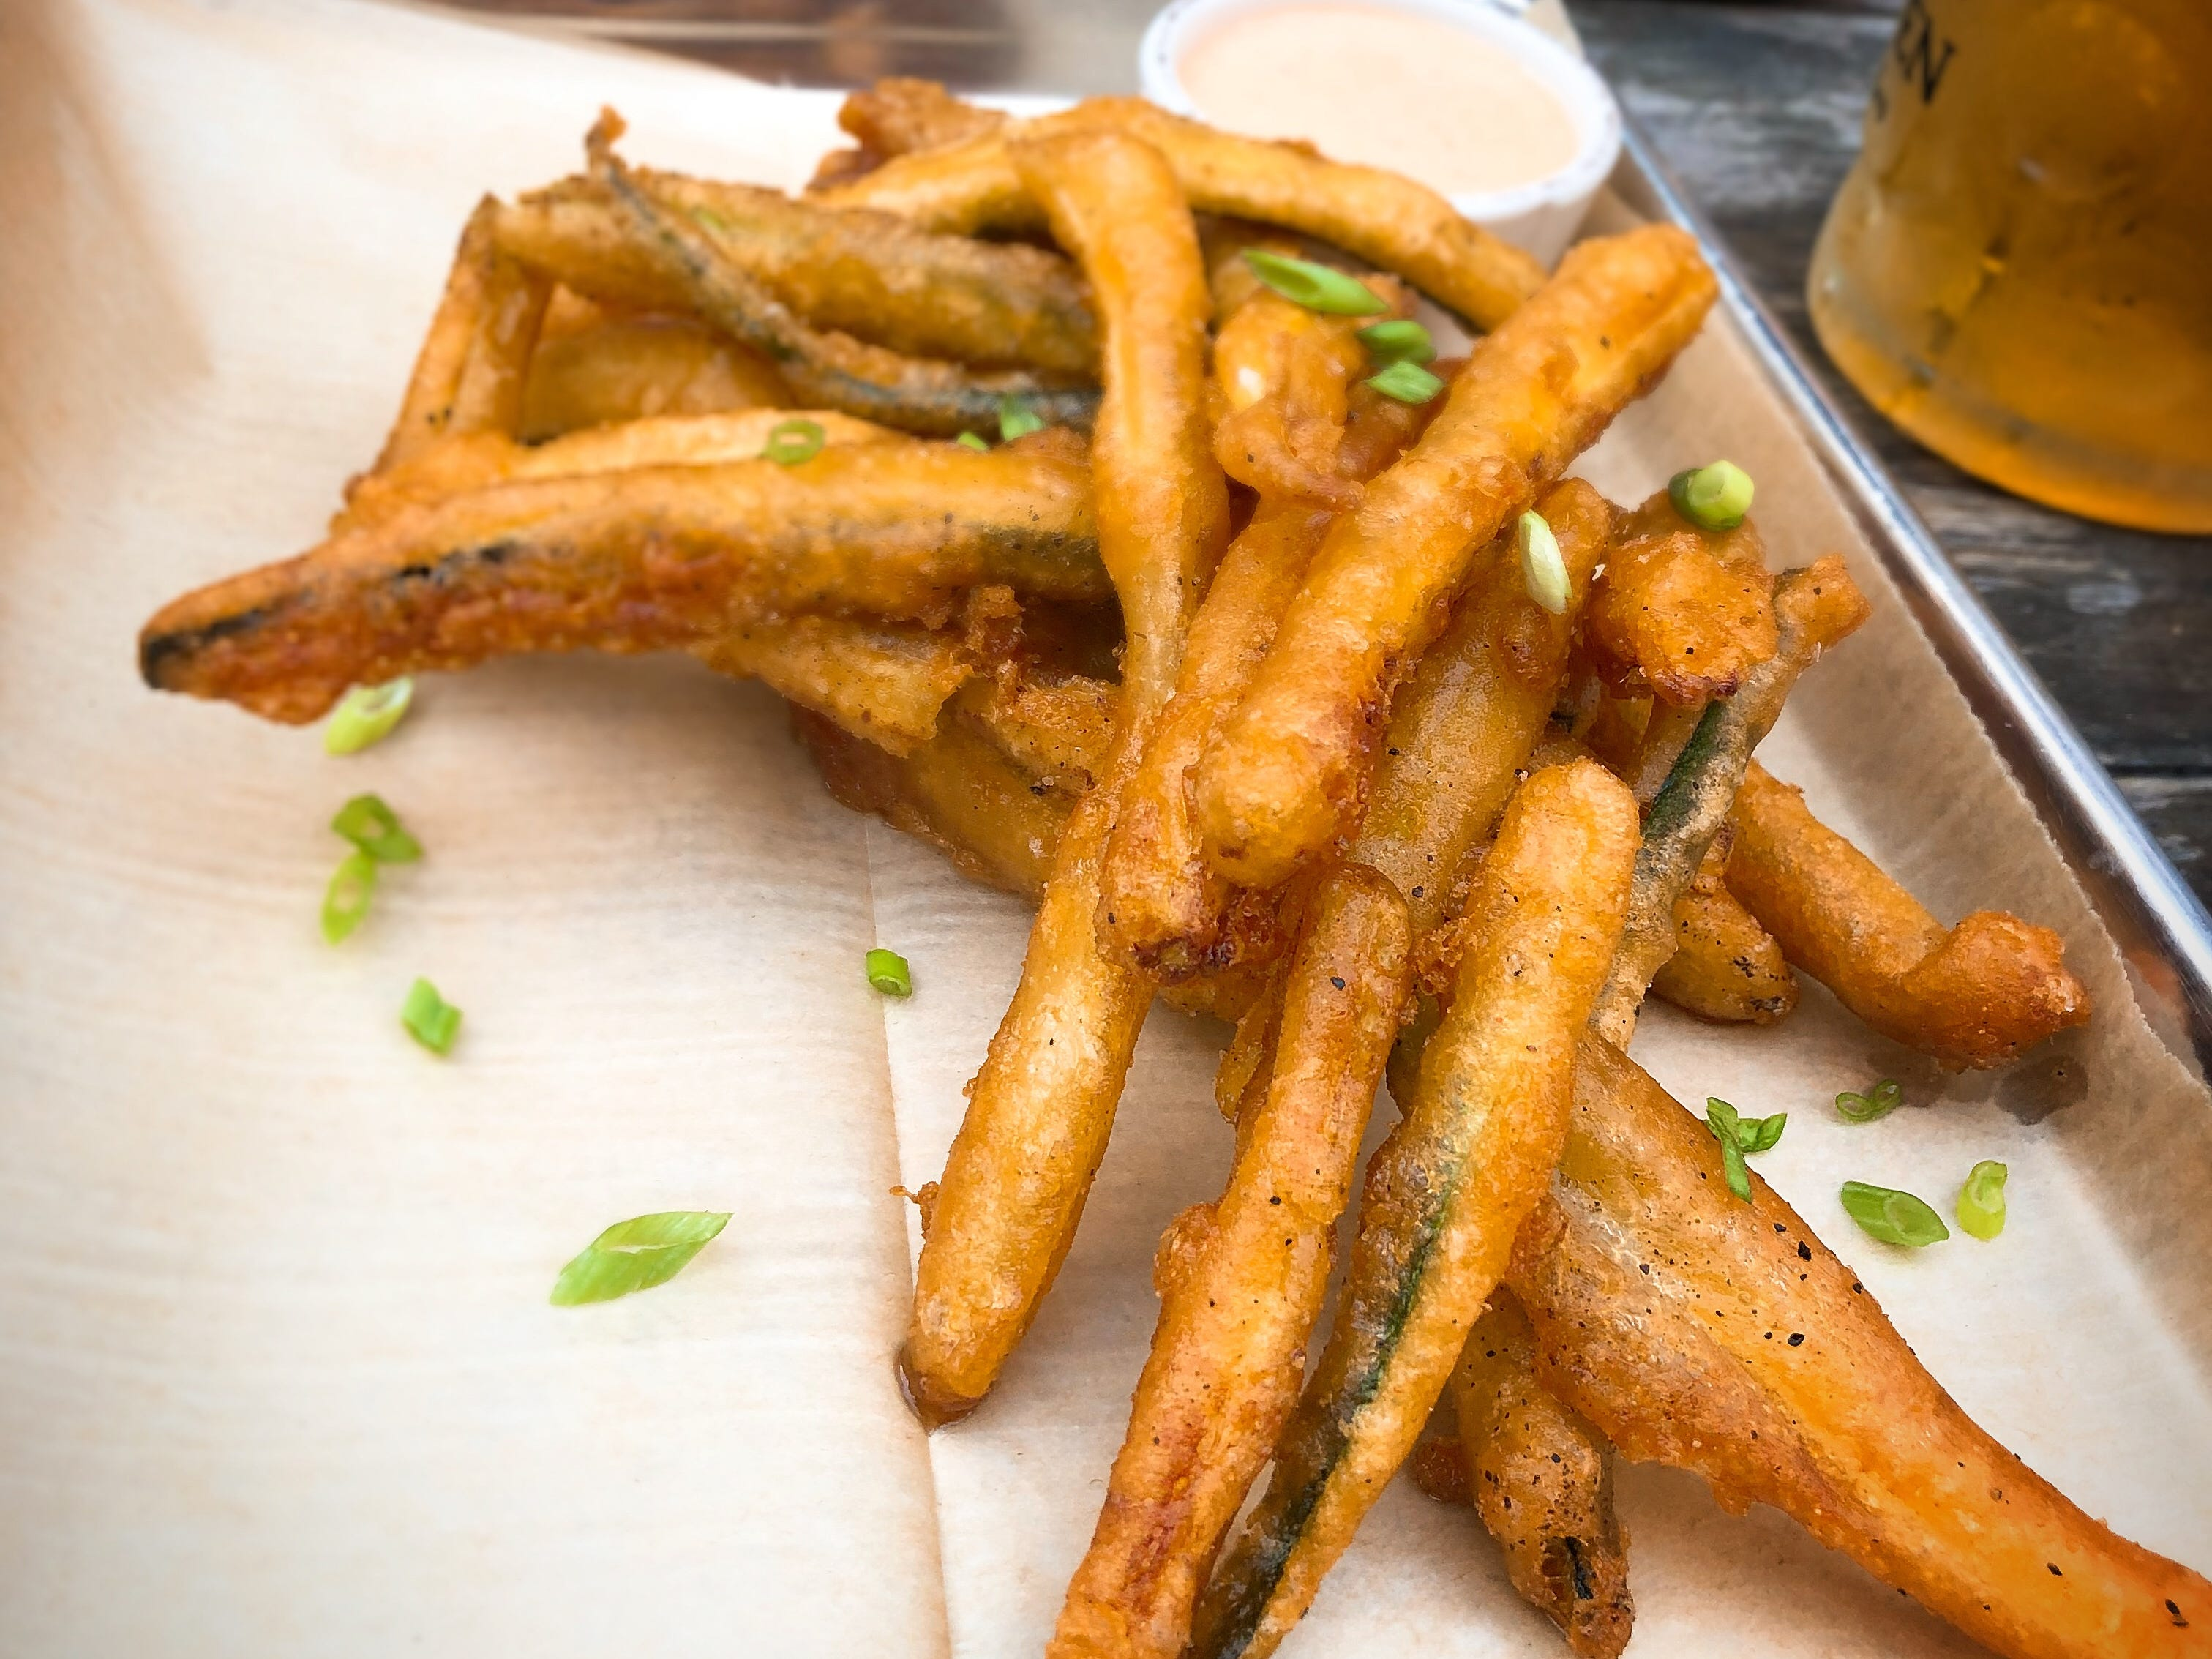 Beer-battered zucchini fries  are light and airy. At top is the giant pretzel by Amazing Grains Bread Co.